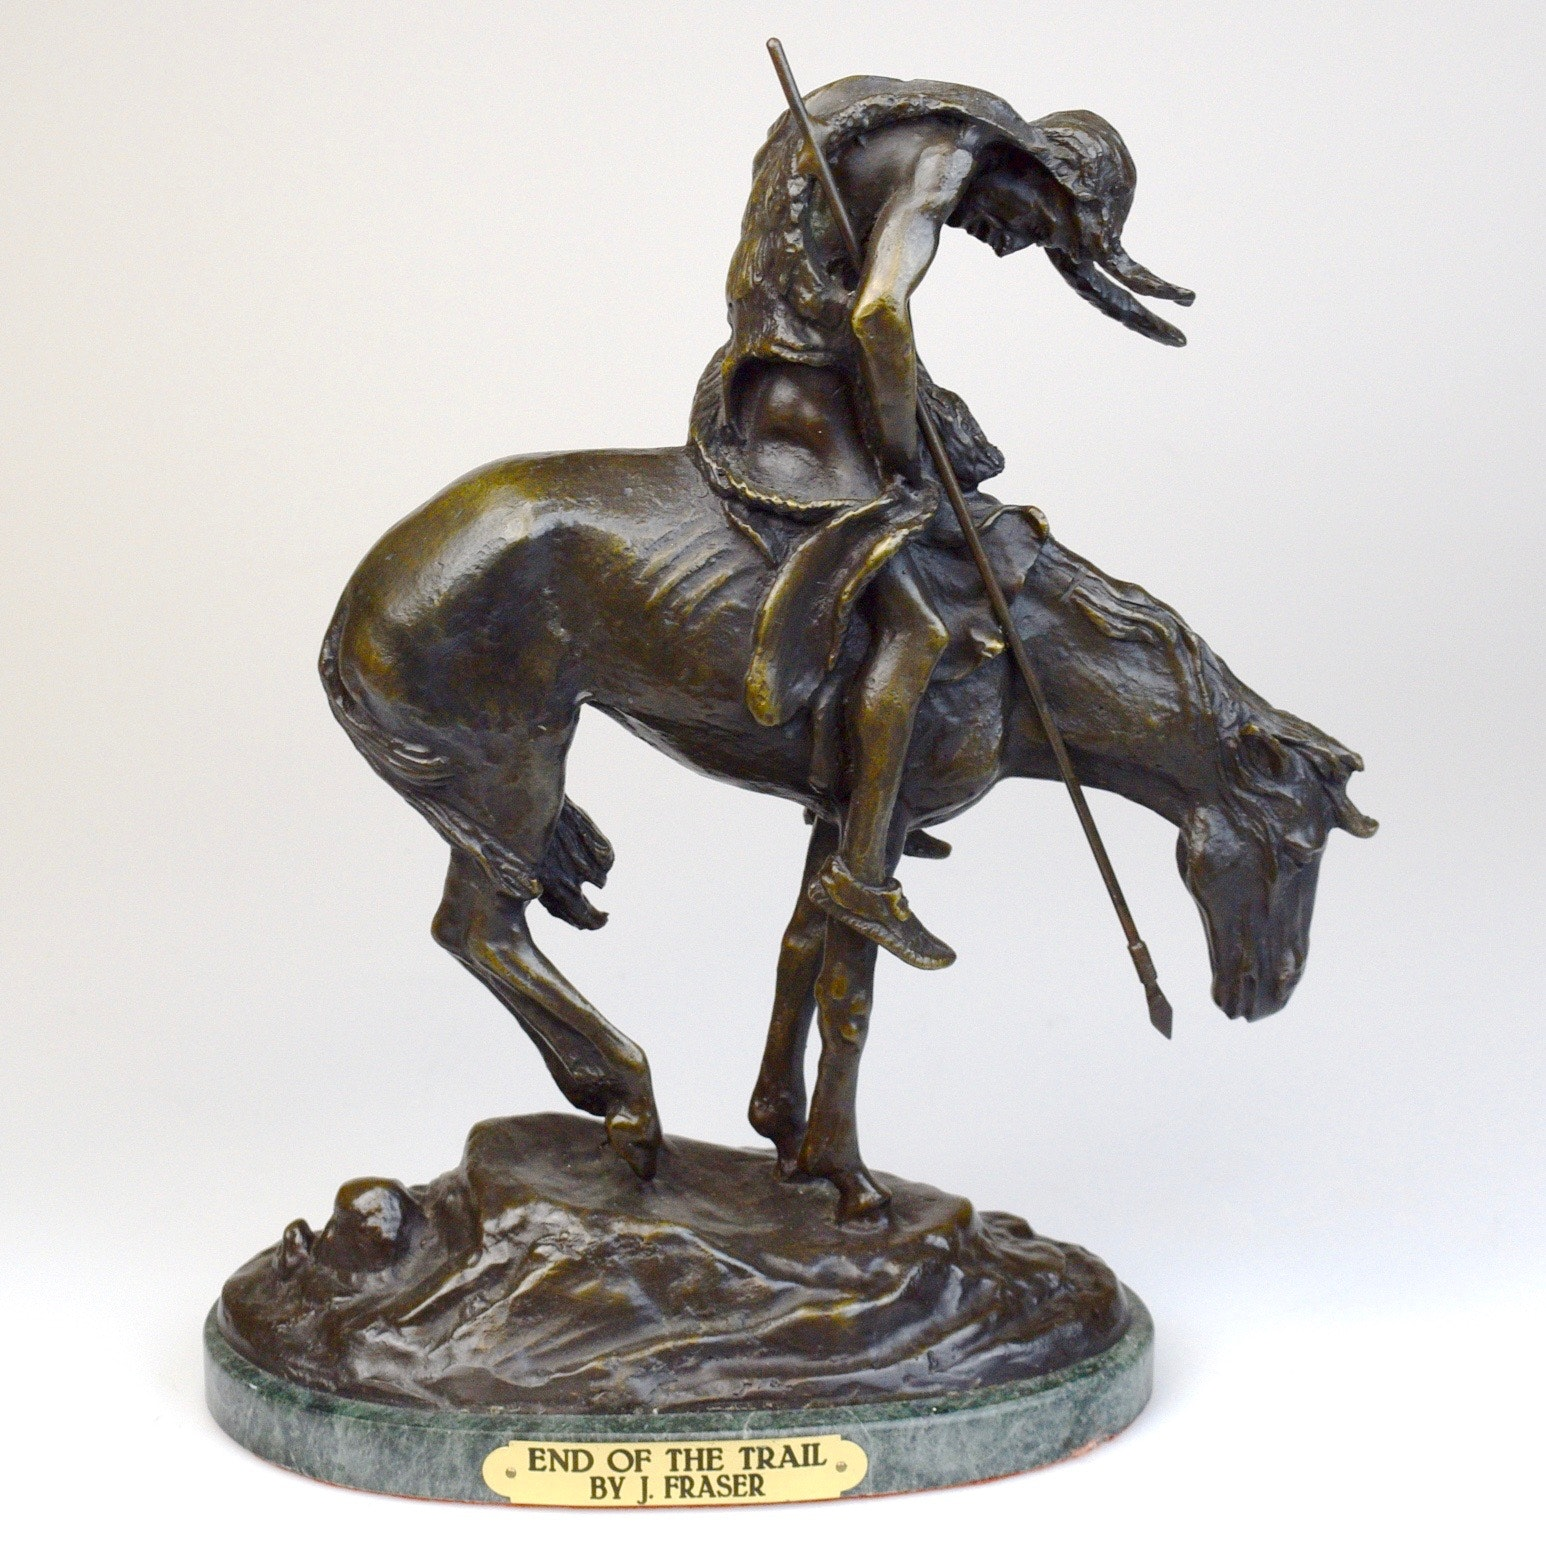 J. Fraser 'End of the Trail' Bronze Reproduction Sculpture